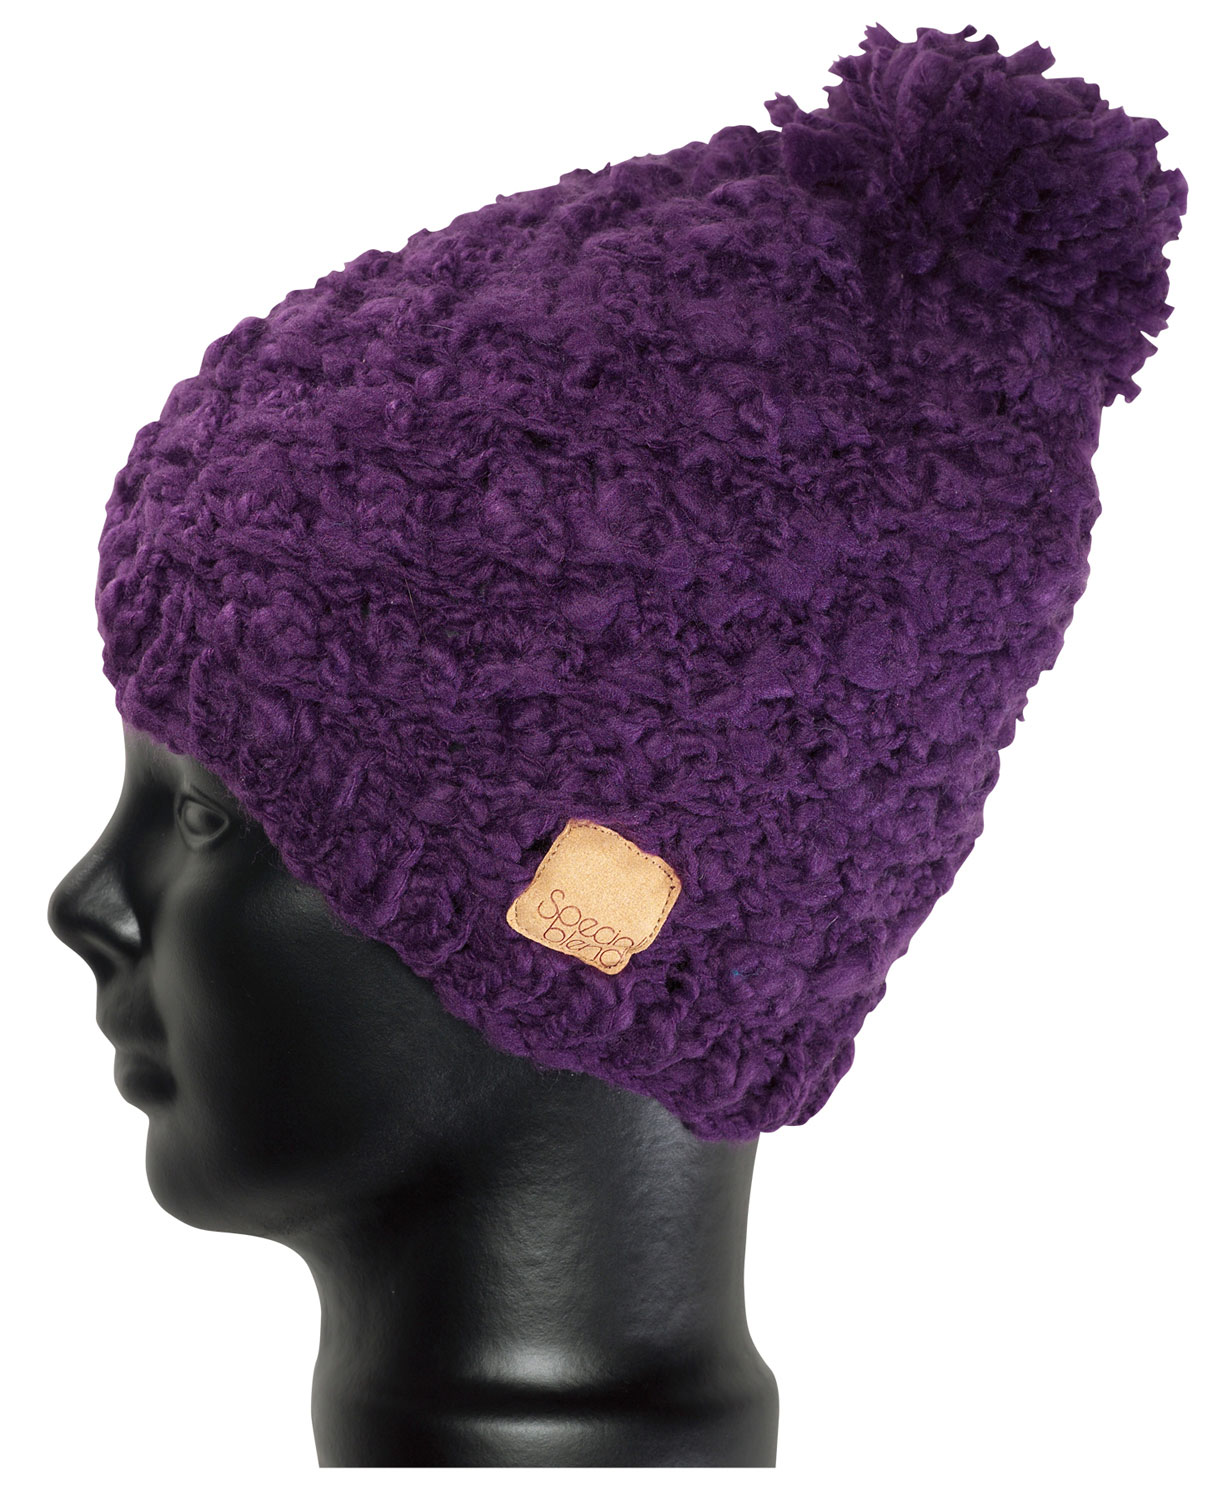 What a cute, playful beanie to have this winter season.  The Special Blend Pom Pom Beanie features flirty pom poms, very girlie and cute.  Made with 100% acrylic, this super soft fabric is so soft to the touch.  It's perfect for wearing everyday with comfort and ease.  Be sure to add this to your winter collection, a definite must have for every girl.  Rock it with style while staying extra warm and cozy.100% soft acrylicMachine knit11  tall - $11.95